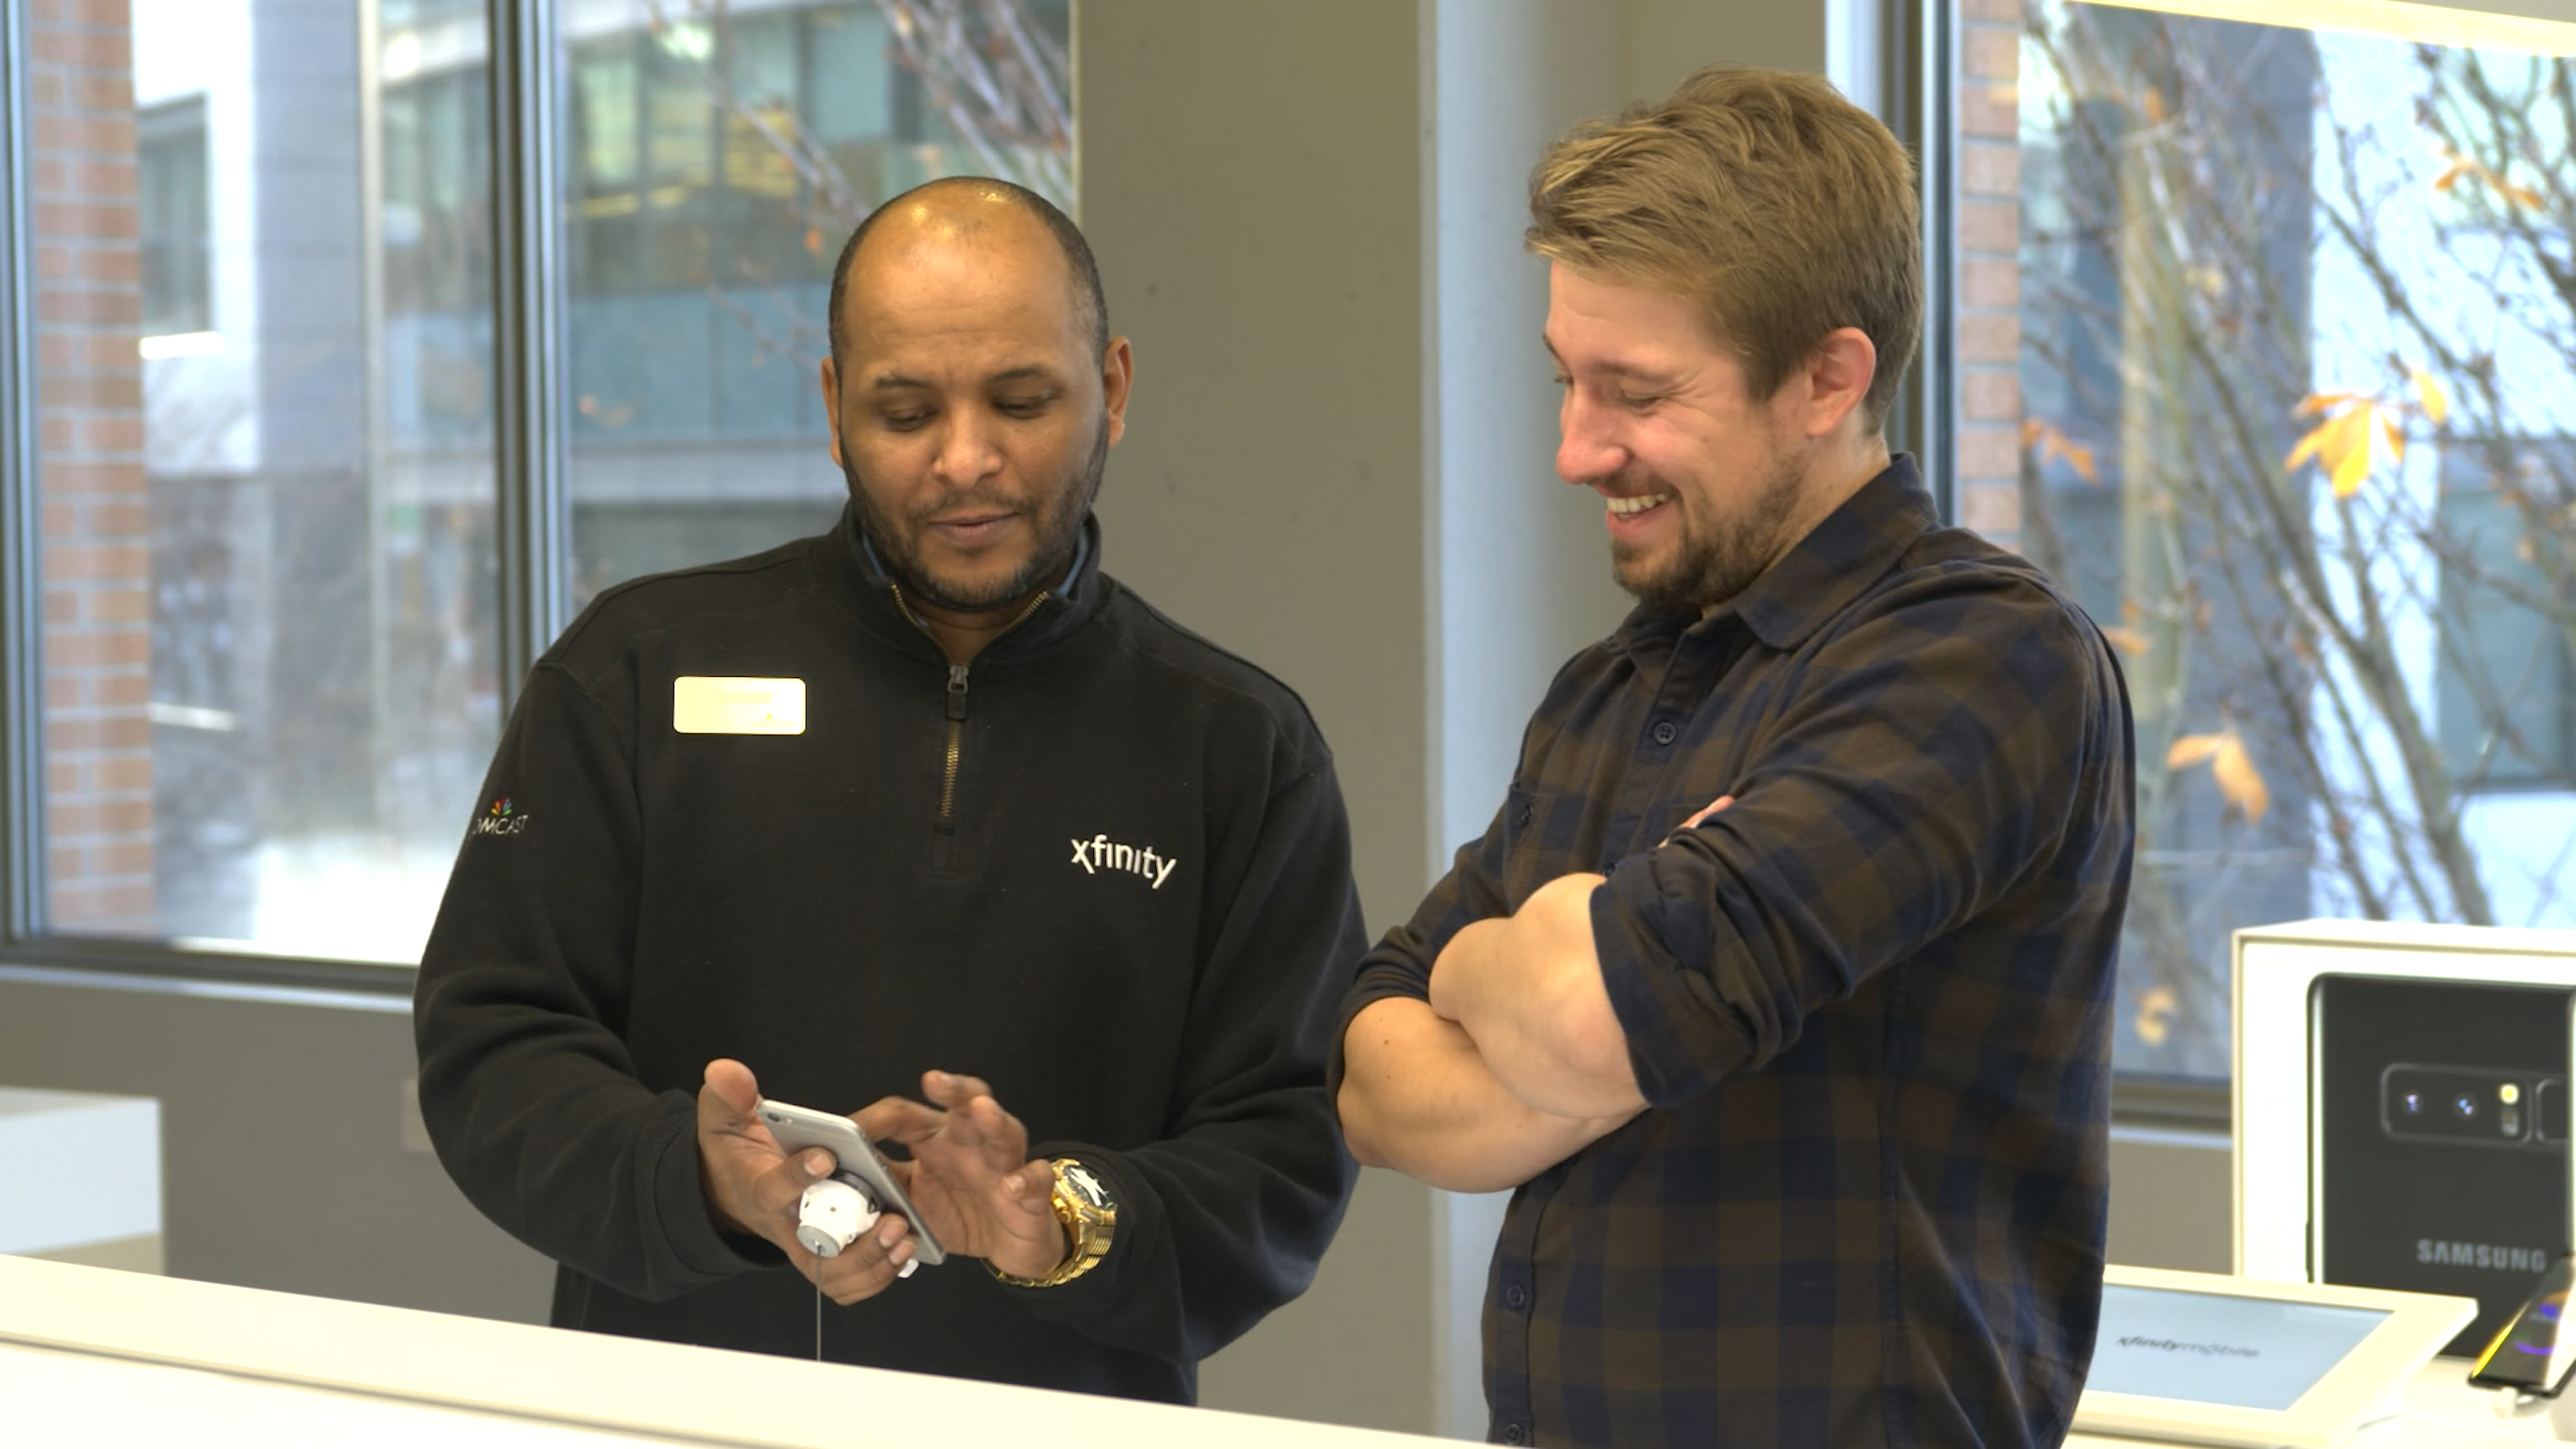 An Xfinity employee shows a customer the features of a new cell phone.